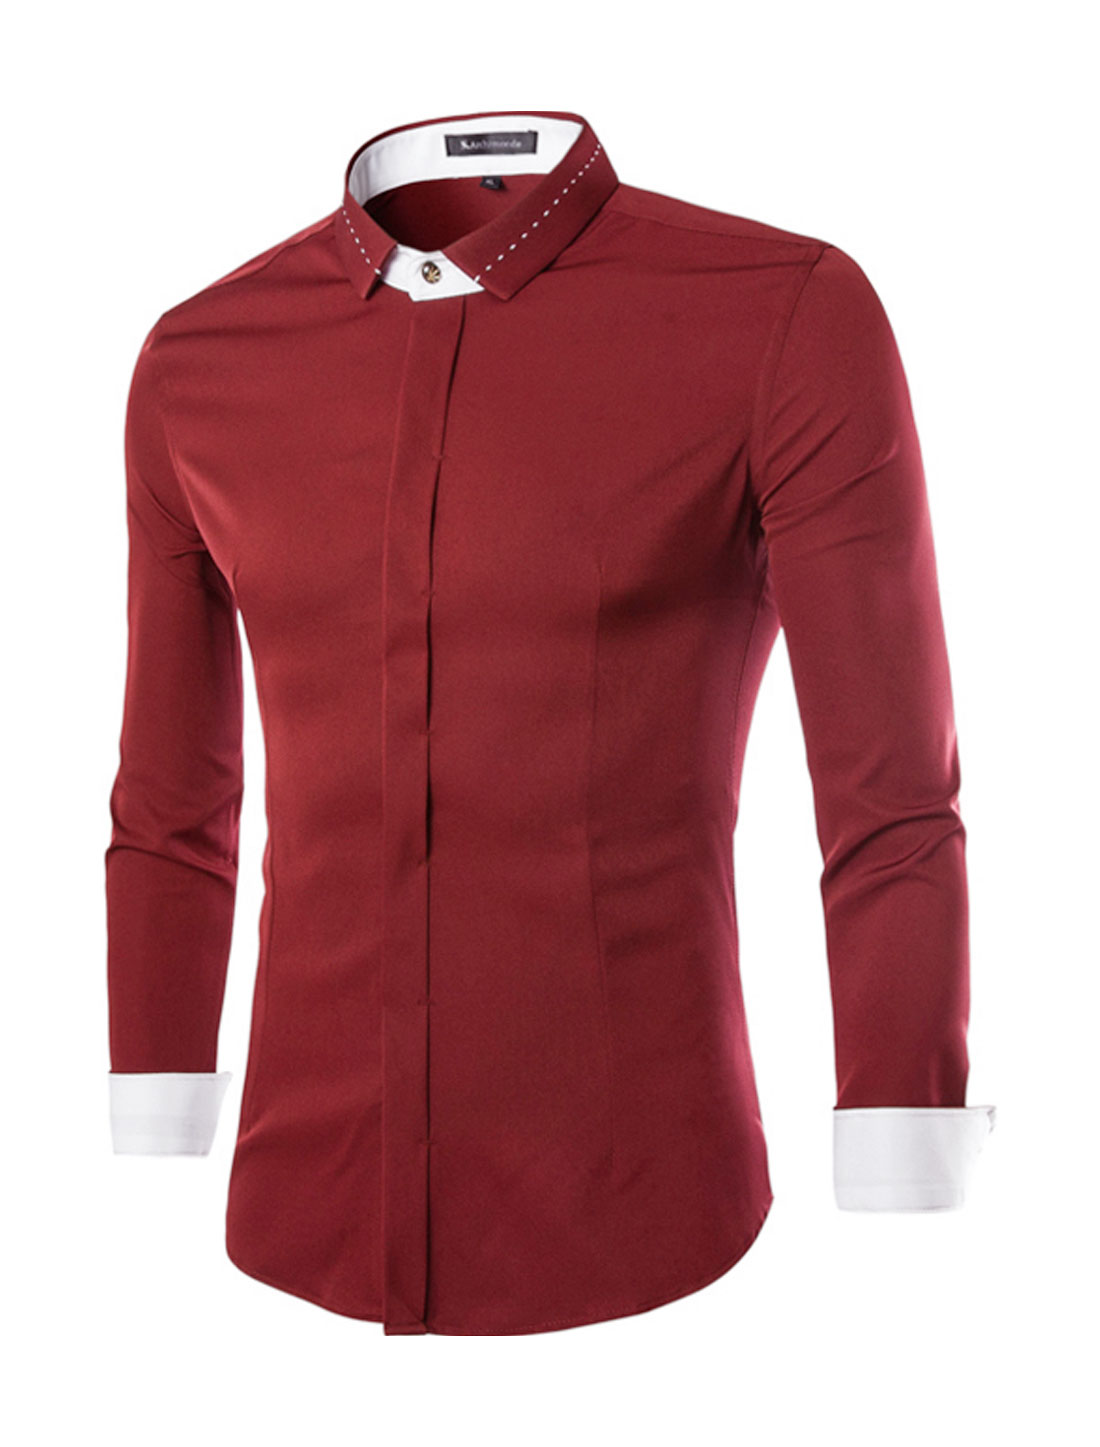 Men Long Sleeves Point Collar Hidden Placket Casual Shirt Red S